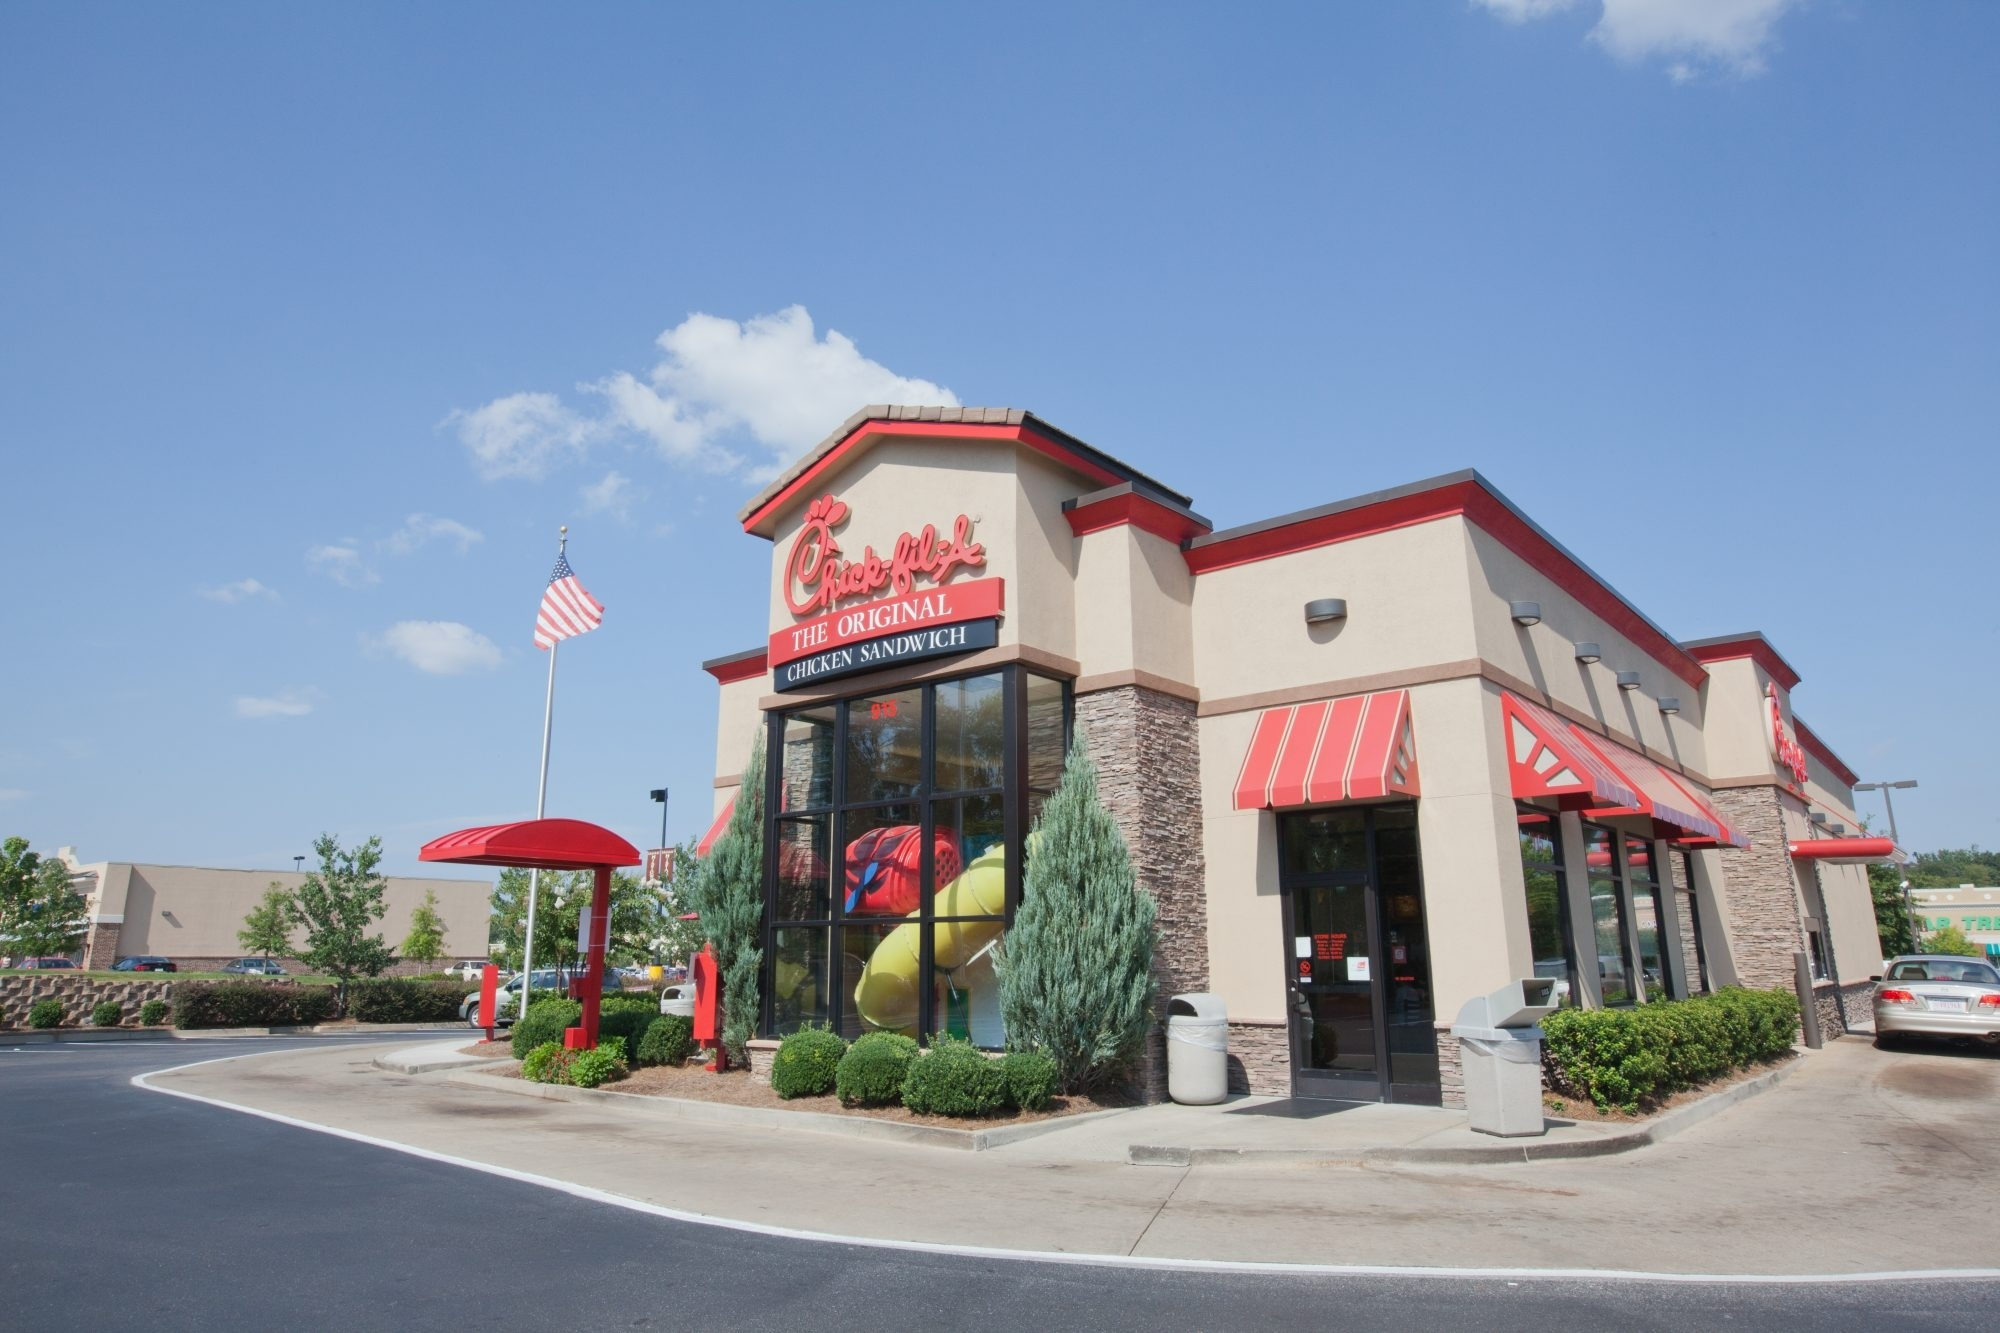 Chick-Fil-A Cow Calendar Will Be No More In 2019 | Southern within Does Chick Fil A Have A Wall Calendar